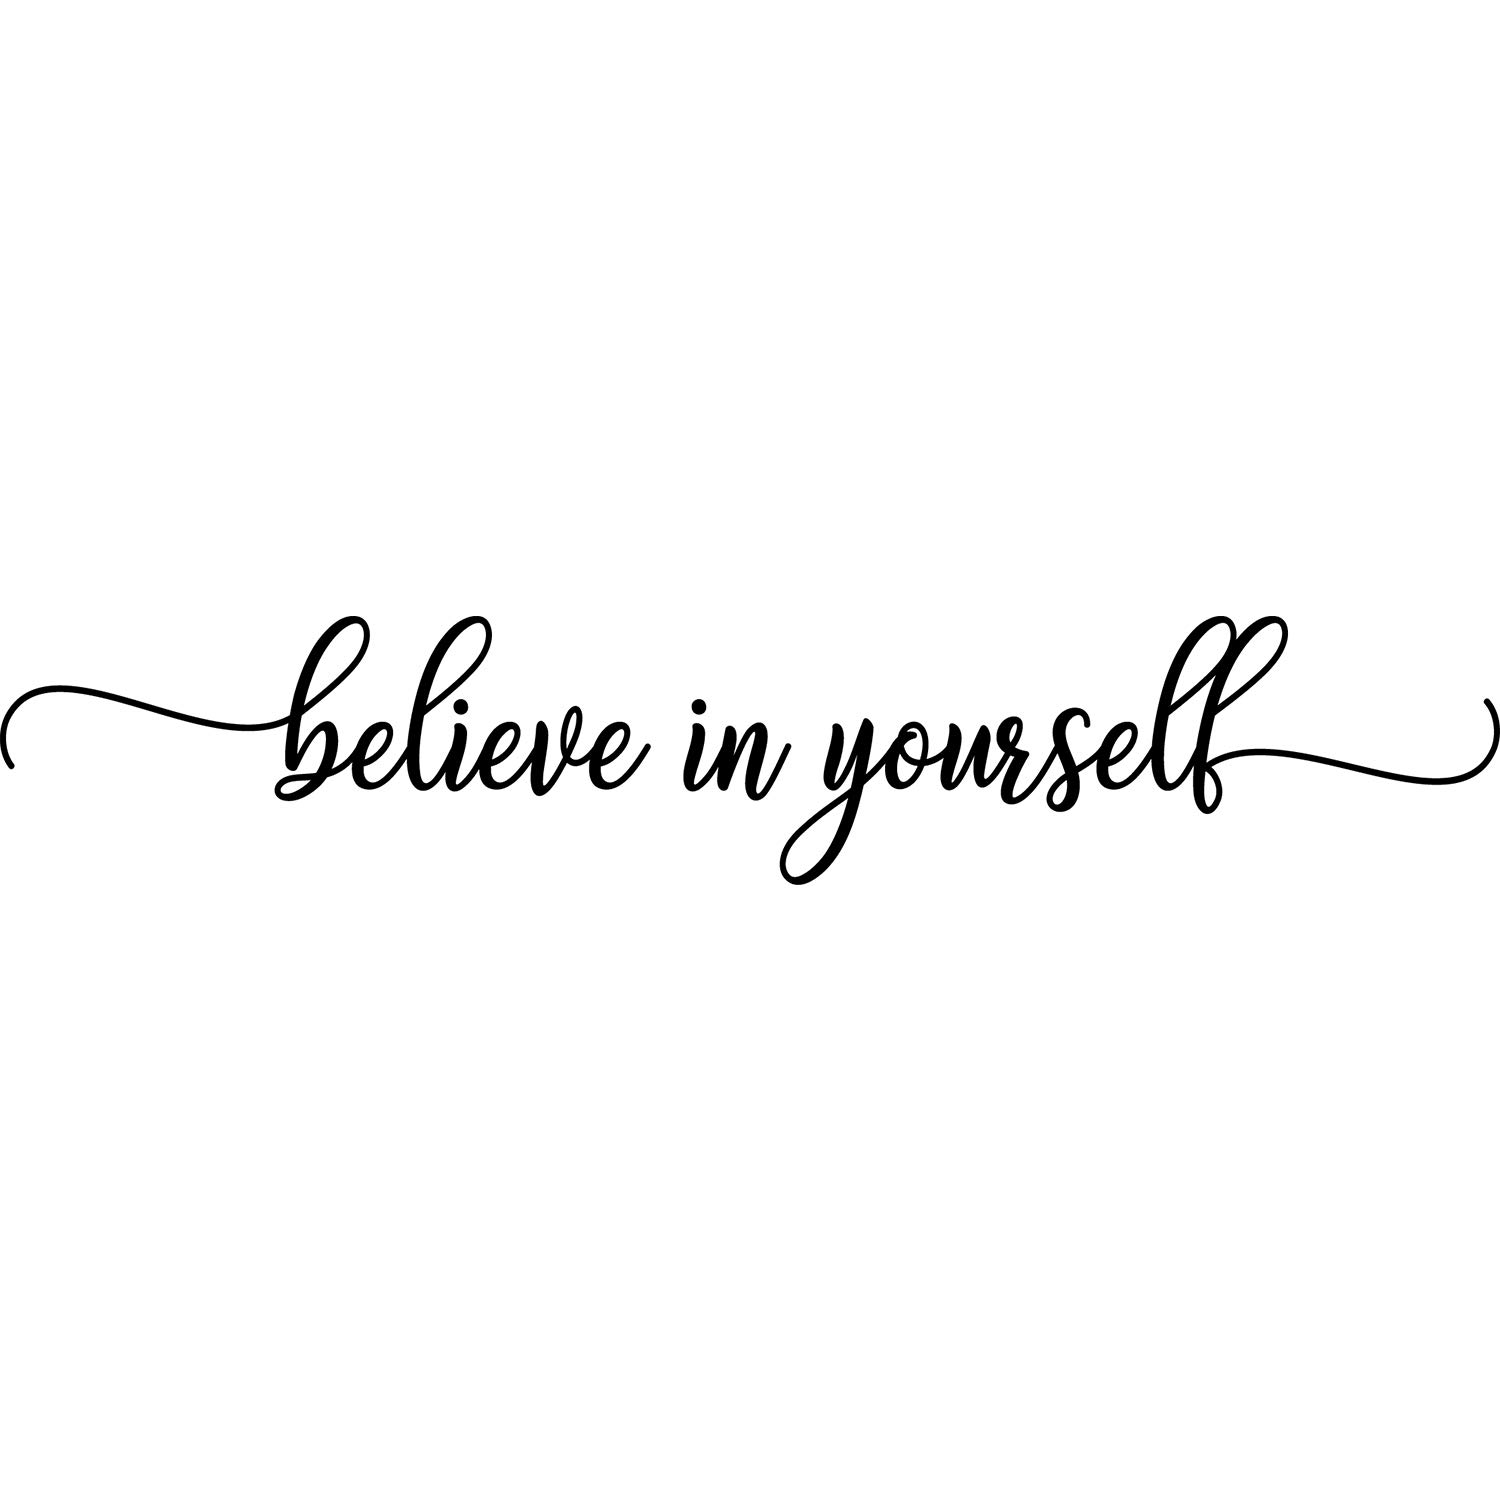 My Vinyl Story - Believe in Yourself - Wall Decals for Bedroom Motivational Decal Quote Religious Words and Saying Sticker Sign Family Decor Removable Vinyl for Living Room Home 36x7 Inches